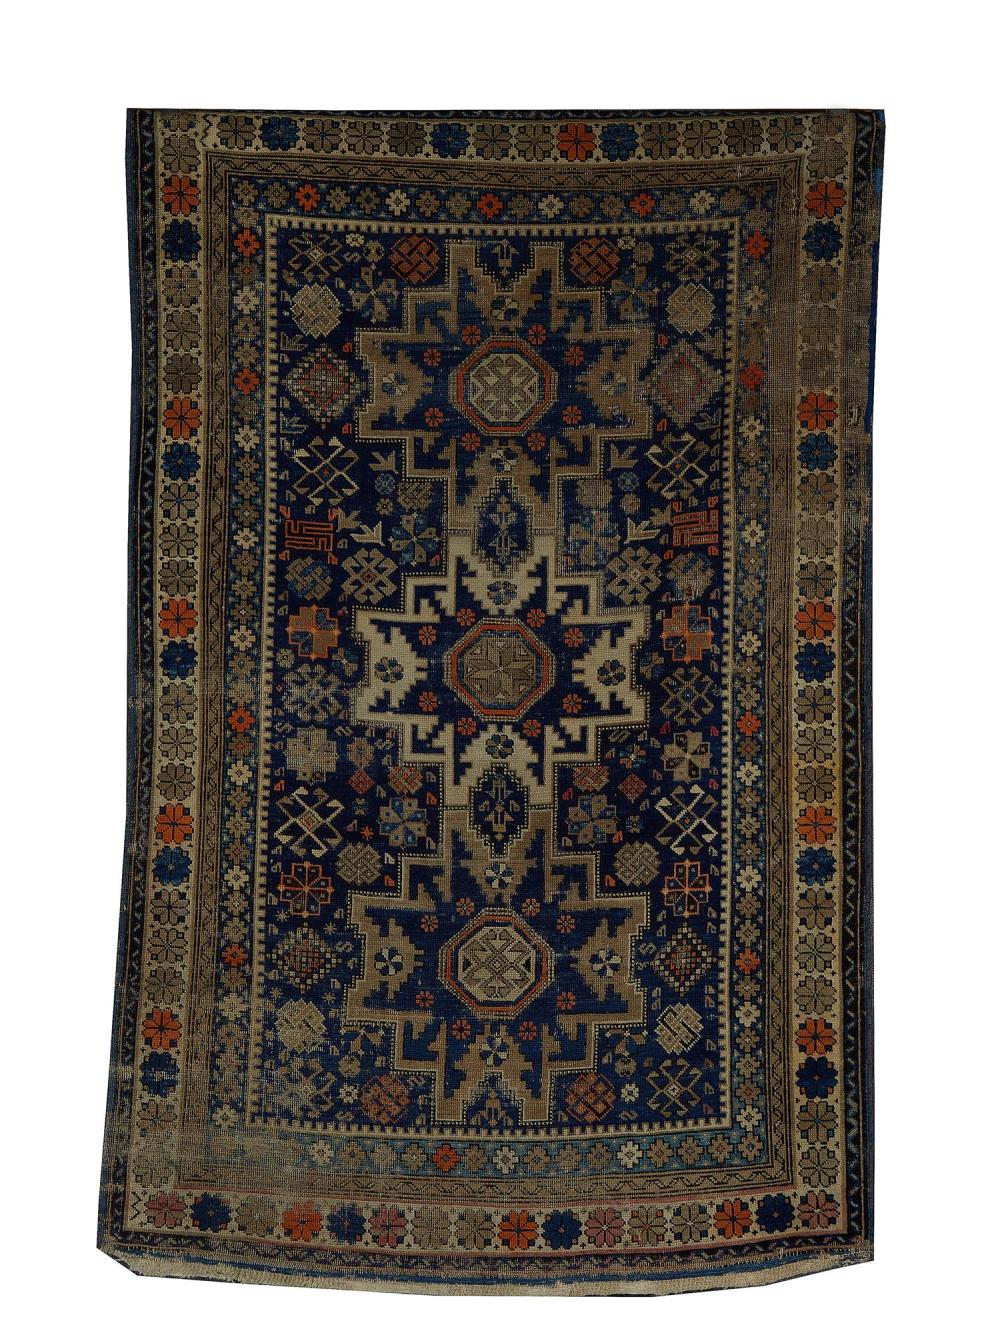 Antique Russian Kazak carpet